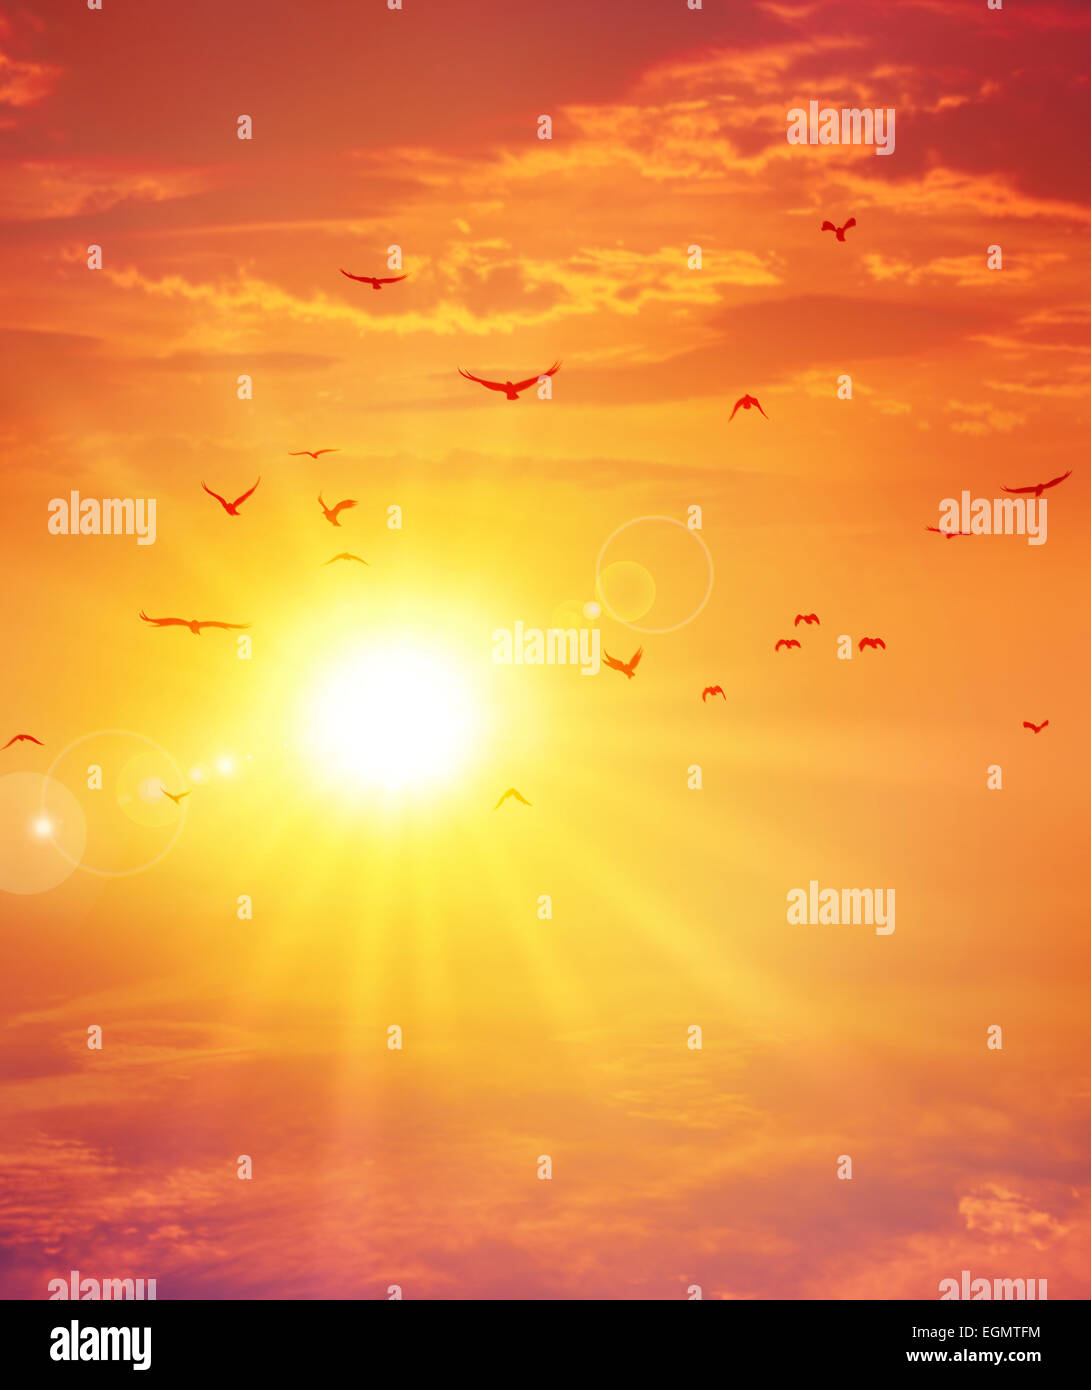 Summer sunset. Birds flight ahead the setting sun in a cloudy sky background - Stock Image